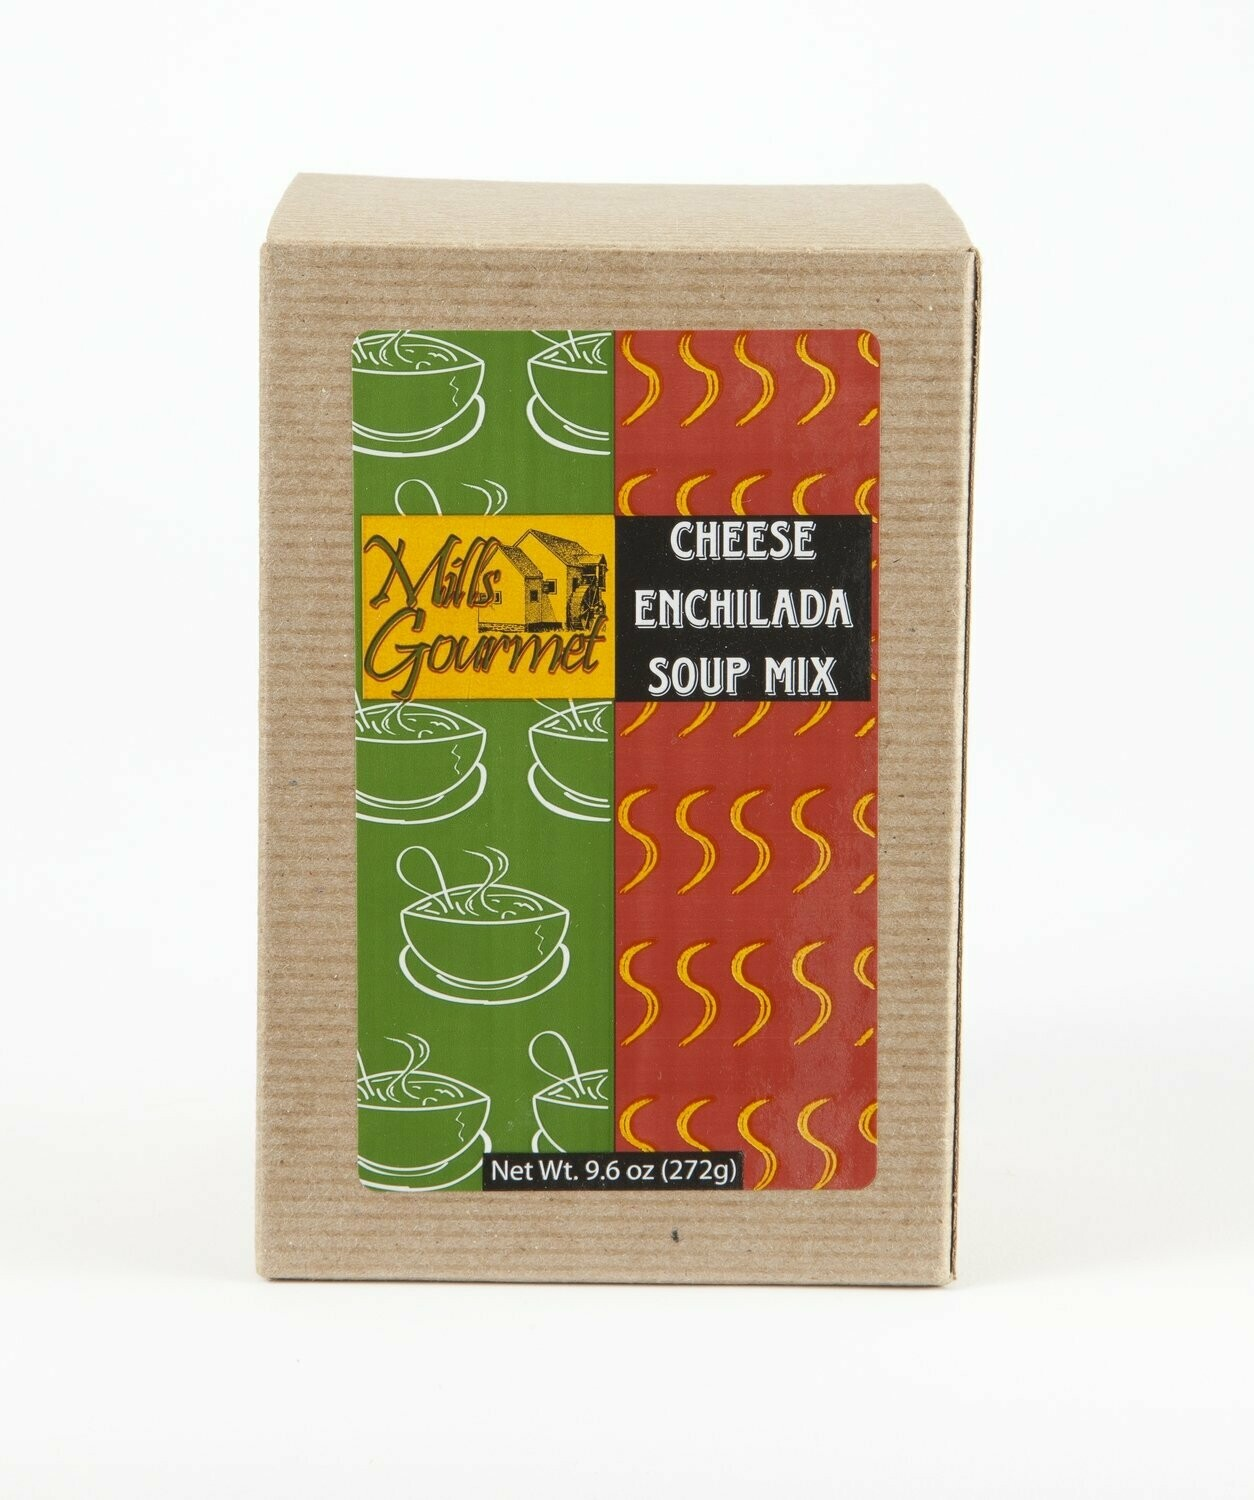 Cheese Enchilada Soup Mix